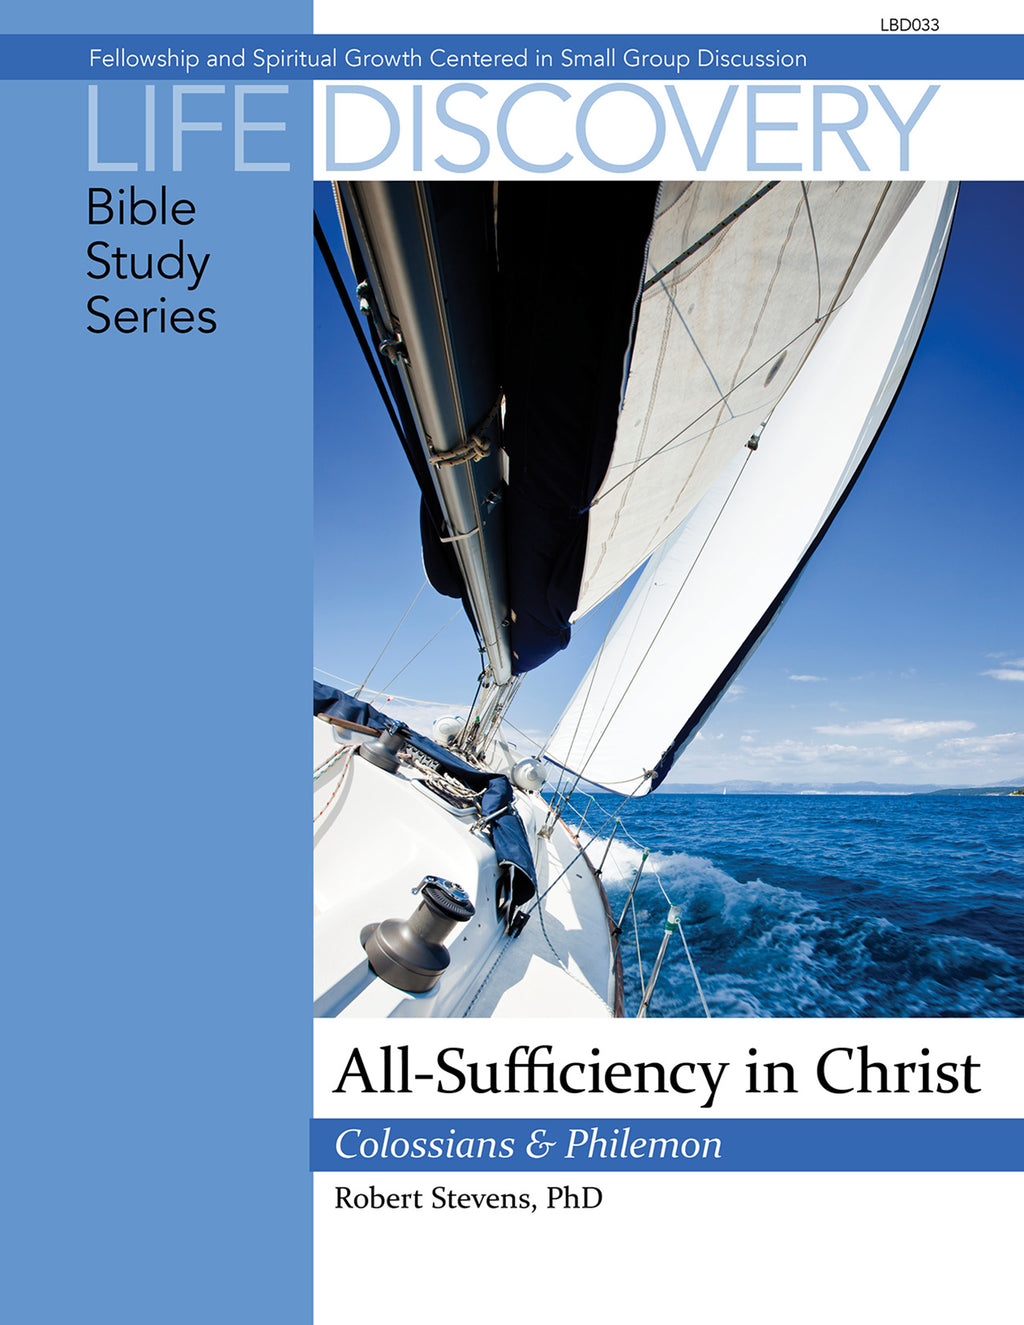 All-Sufficiency in Christ - Studies in Colossians & Philemon